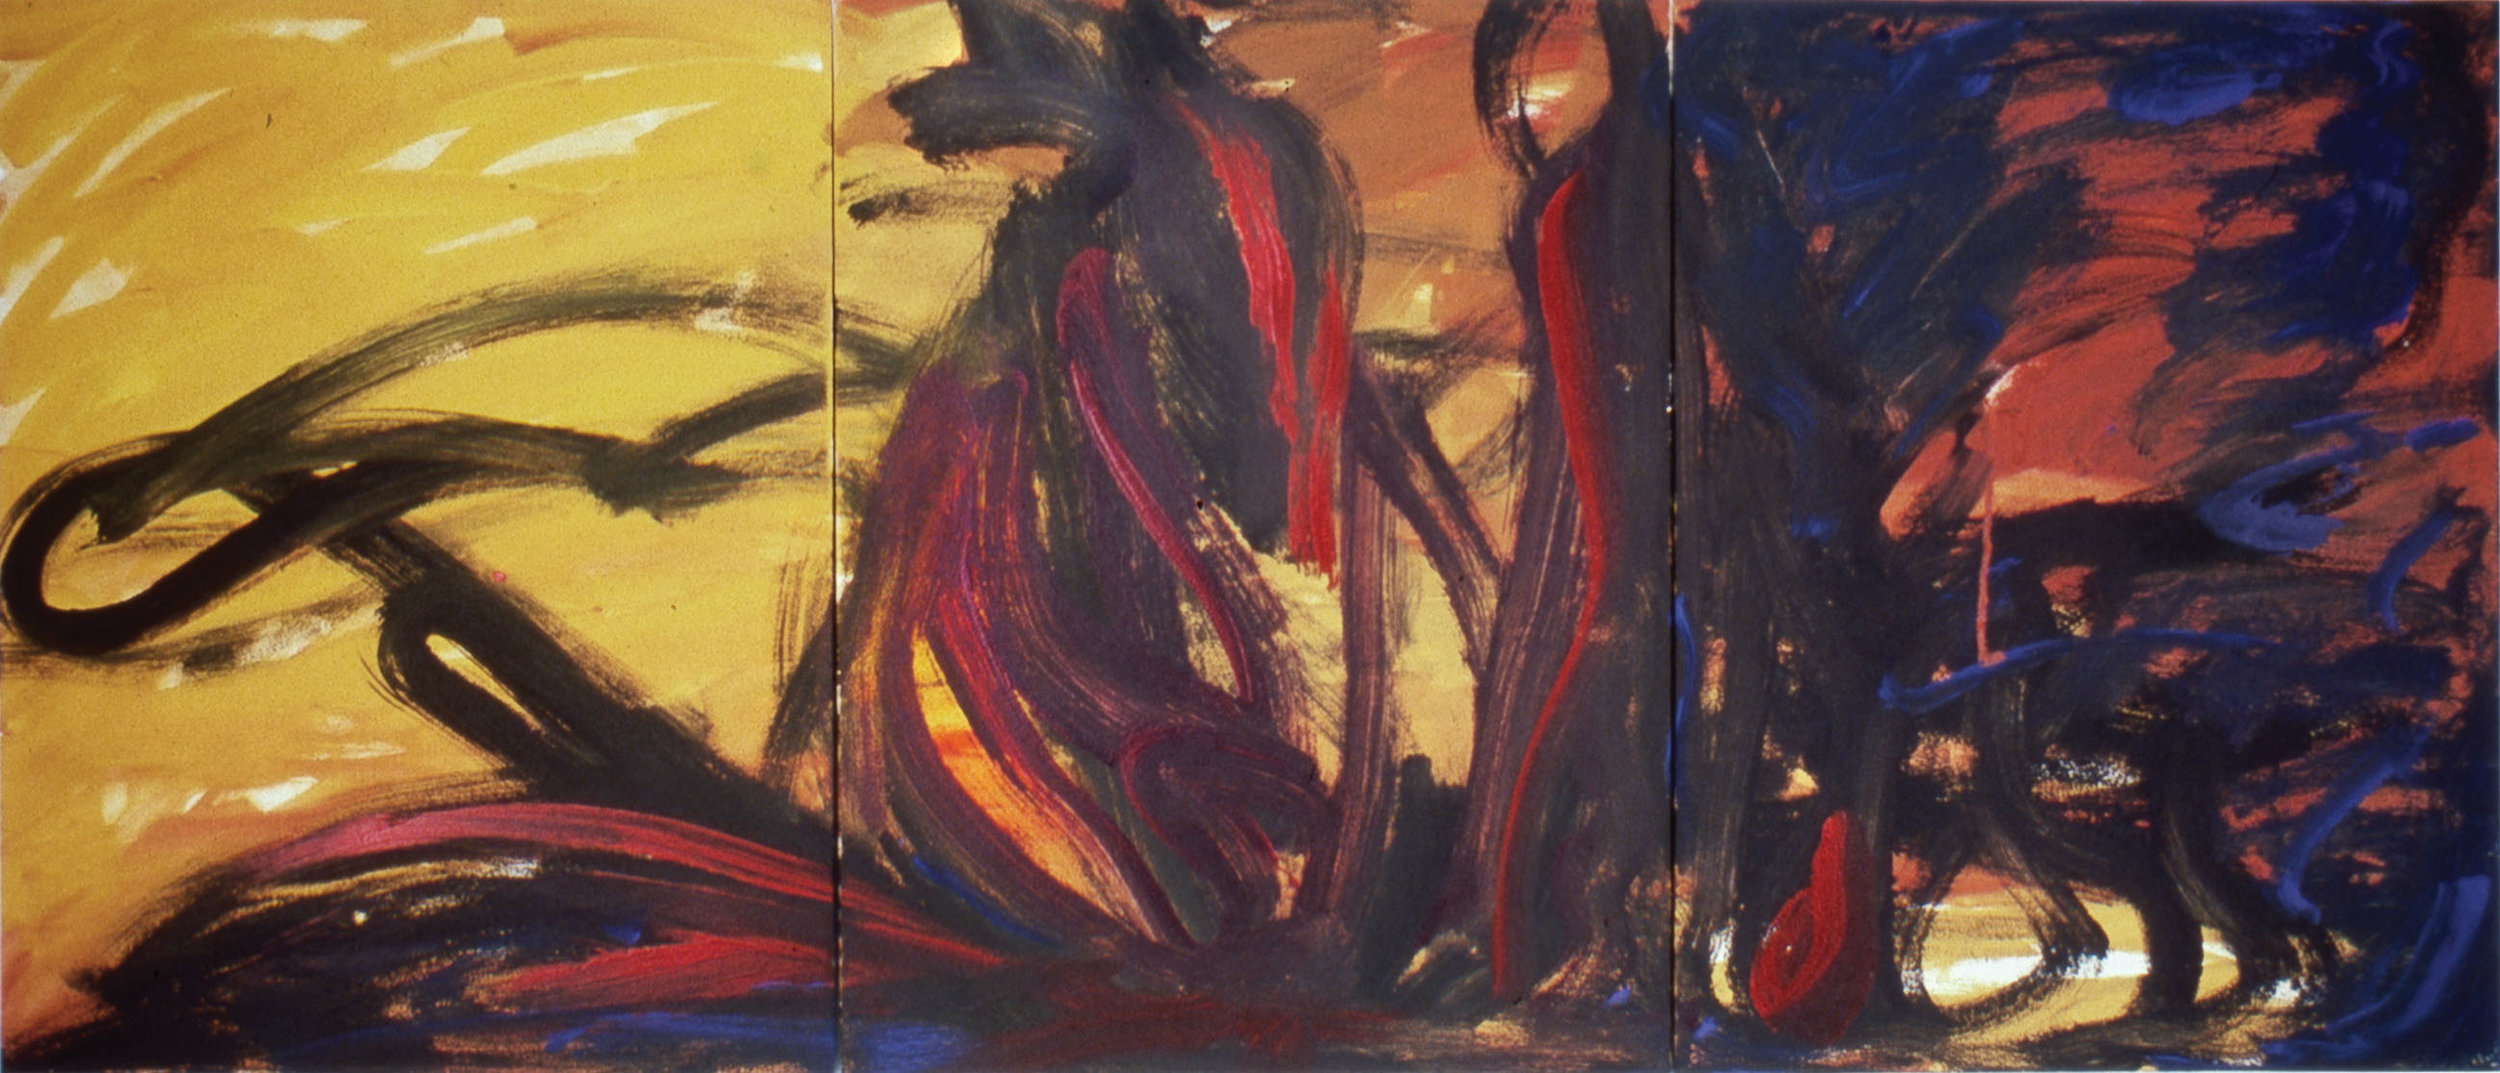 In Fear of War II  1991, acrylic on masonite, 32x72 in In the collection of the Dallas Holocaust Museum